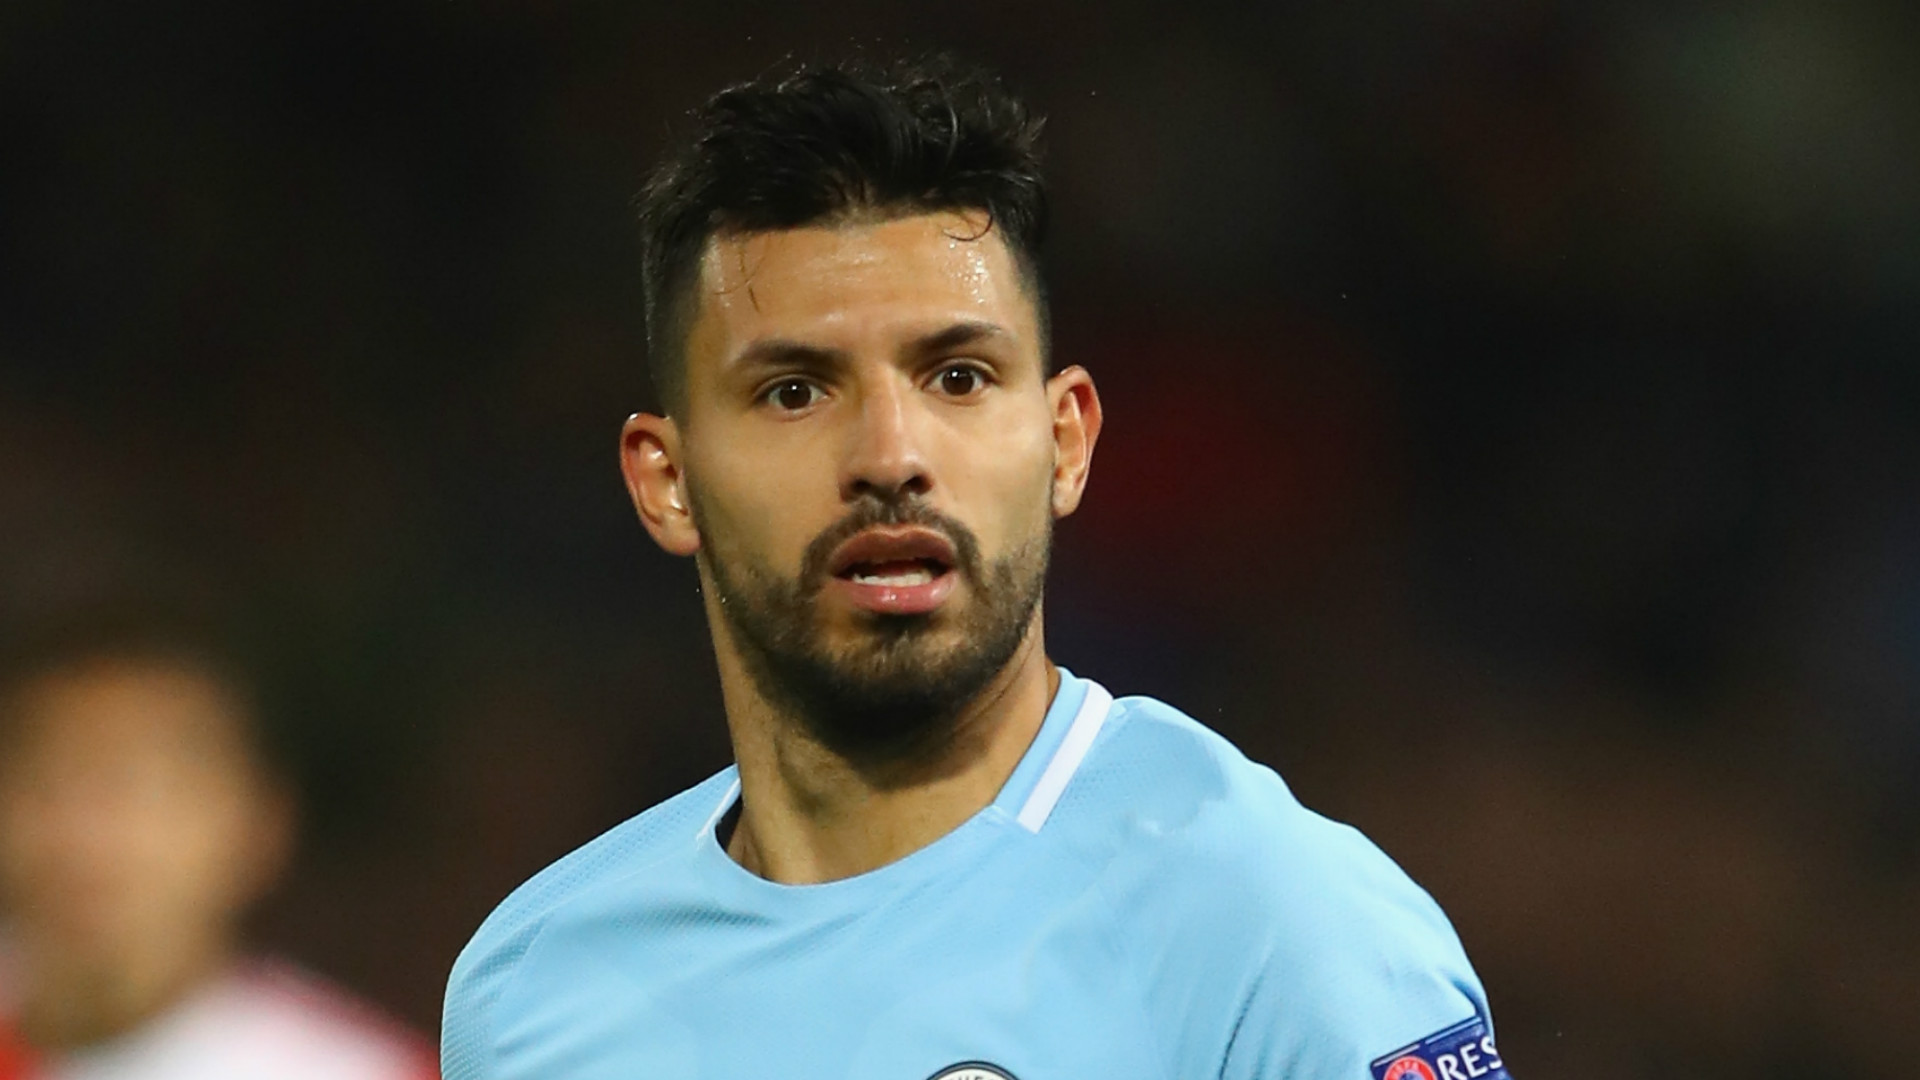 Auto accident: Guardiola has 'no problem' with Aguero's trip